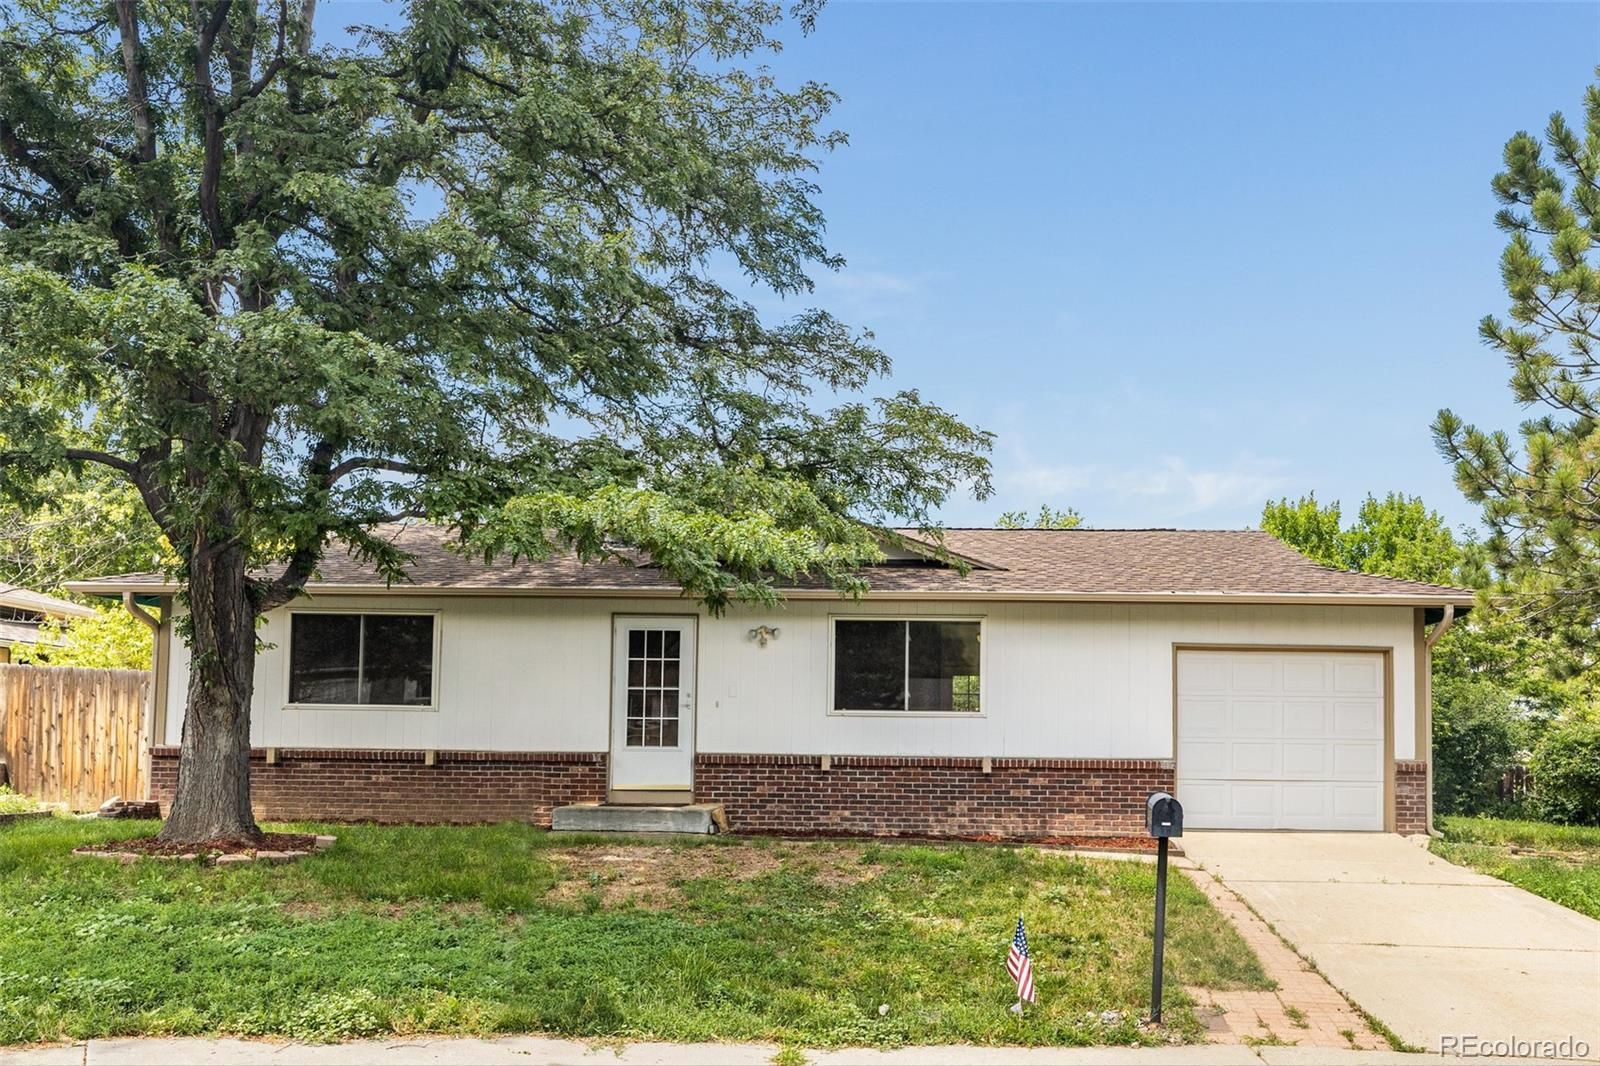 18735 W 59th Place, Golden, CO 80403 - #: 7138543